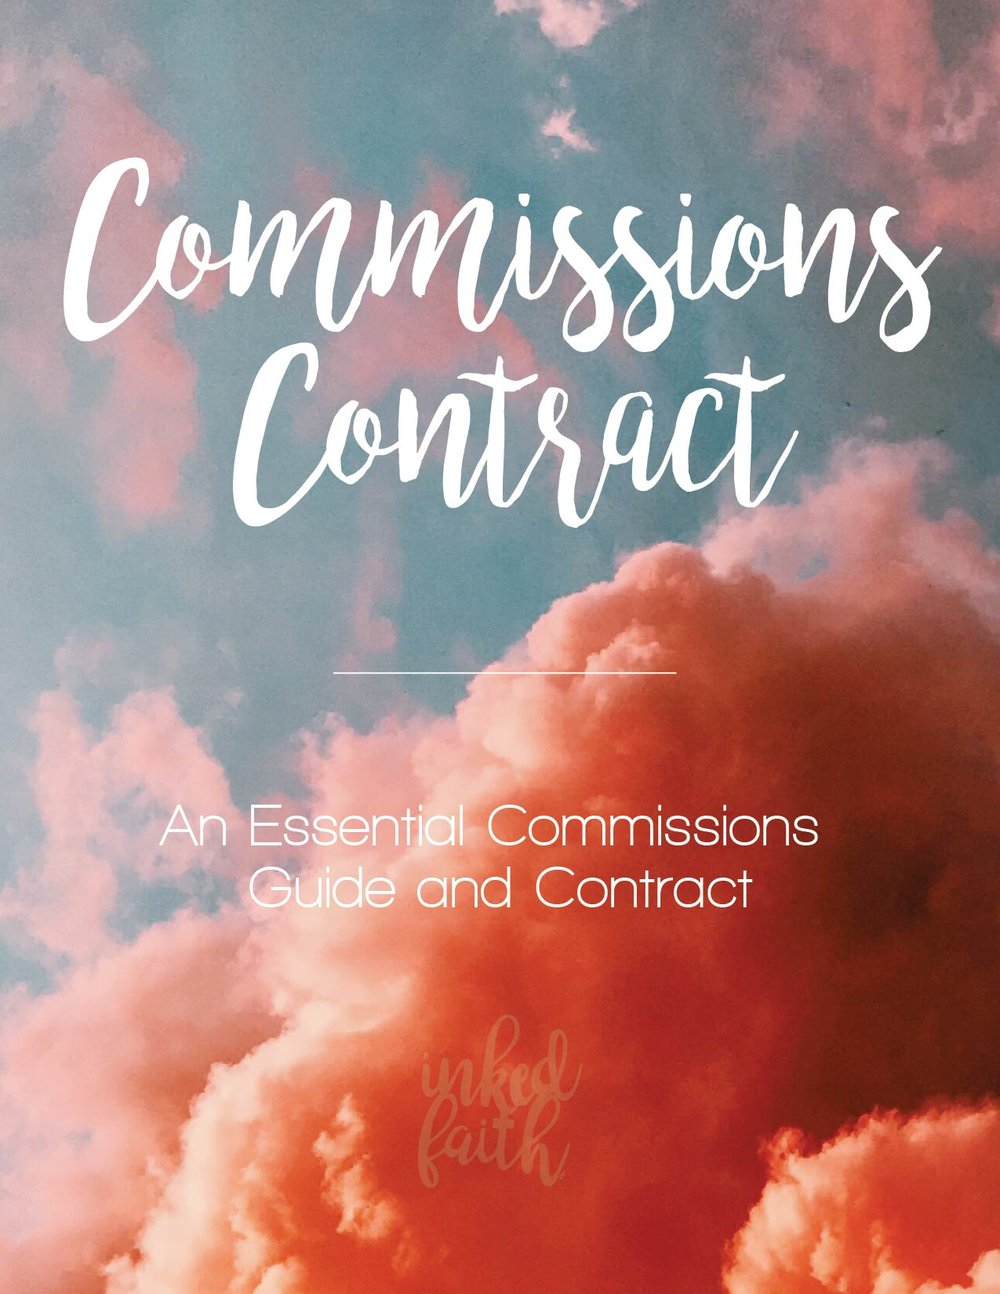 Free Download - This is a guide to all of my processes when commissioning an artwork from what subjects I can do to what to expect and pricing. It's packed full of great information!COMING SOON!!(No Download available at this time)